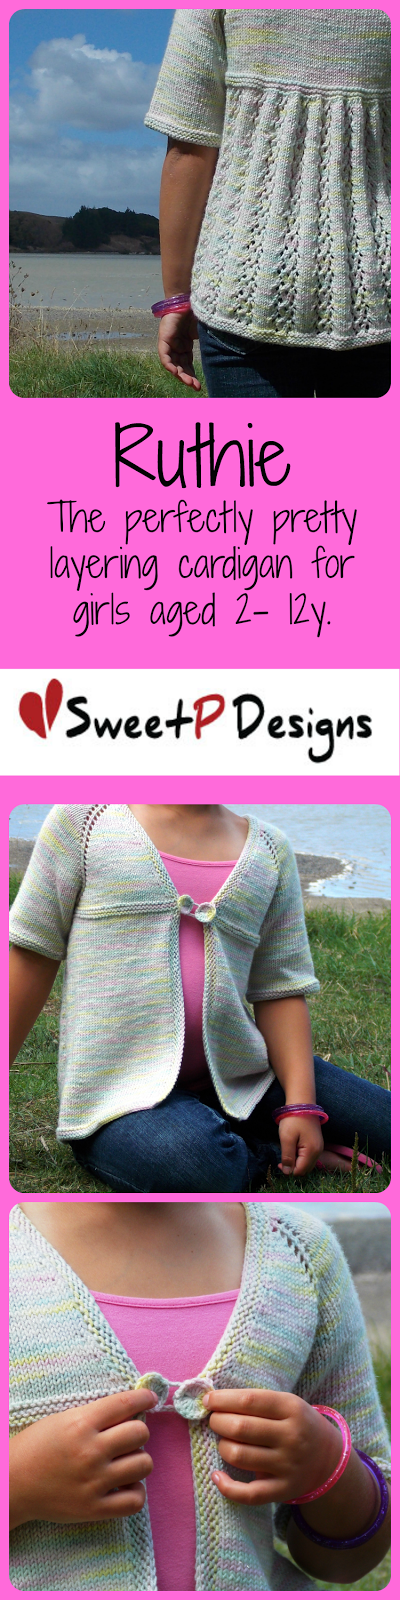 Ruthie by SweetP Designs. A perfectly pretty layering cardigan for sizes 2-12y.